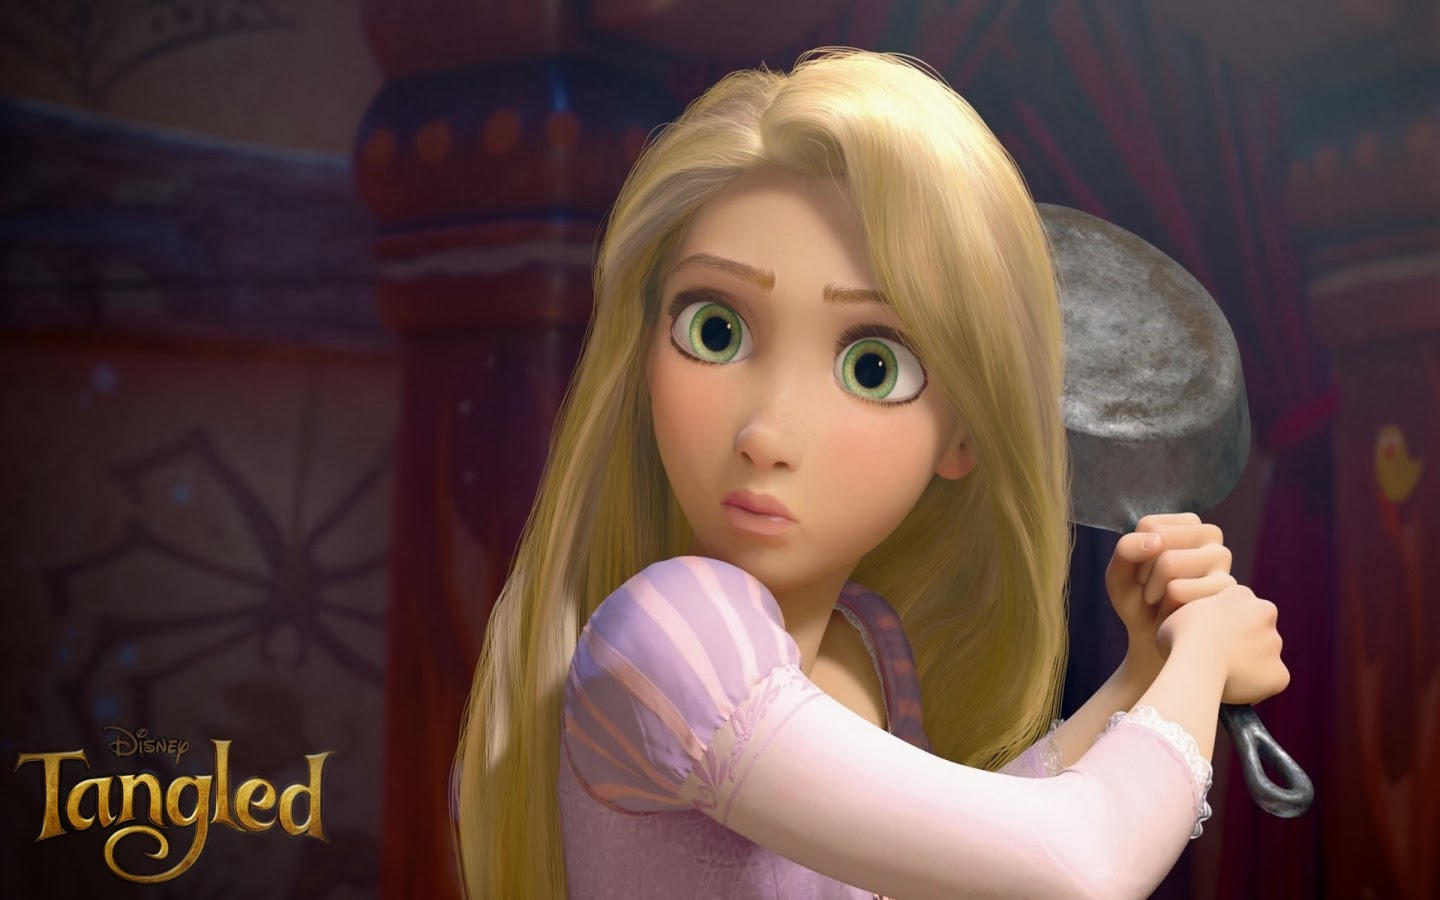 Tangled Rapunzel HD Wallpapers Download HD WALLPAERS 4U FREE 1440x900